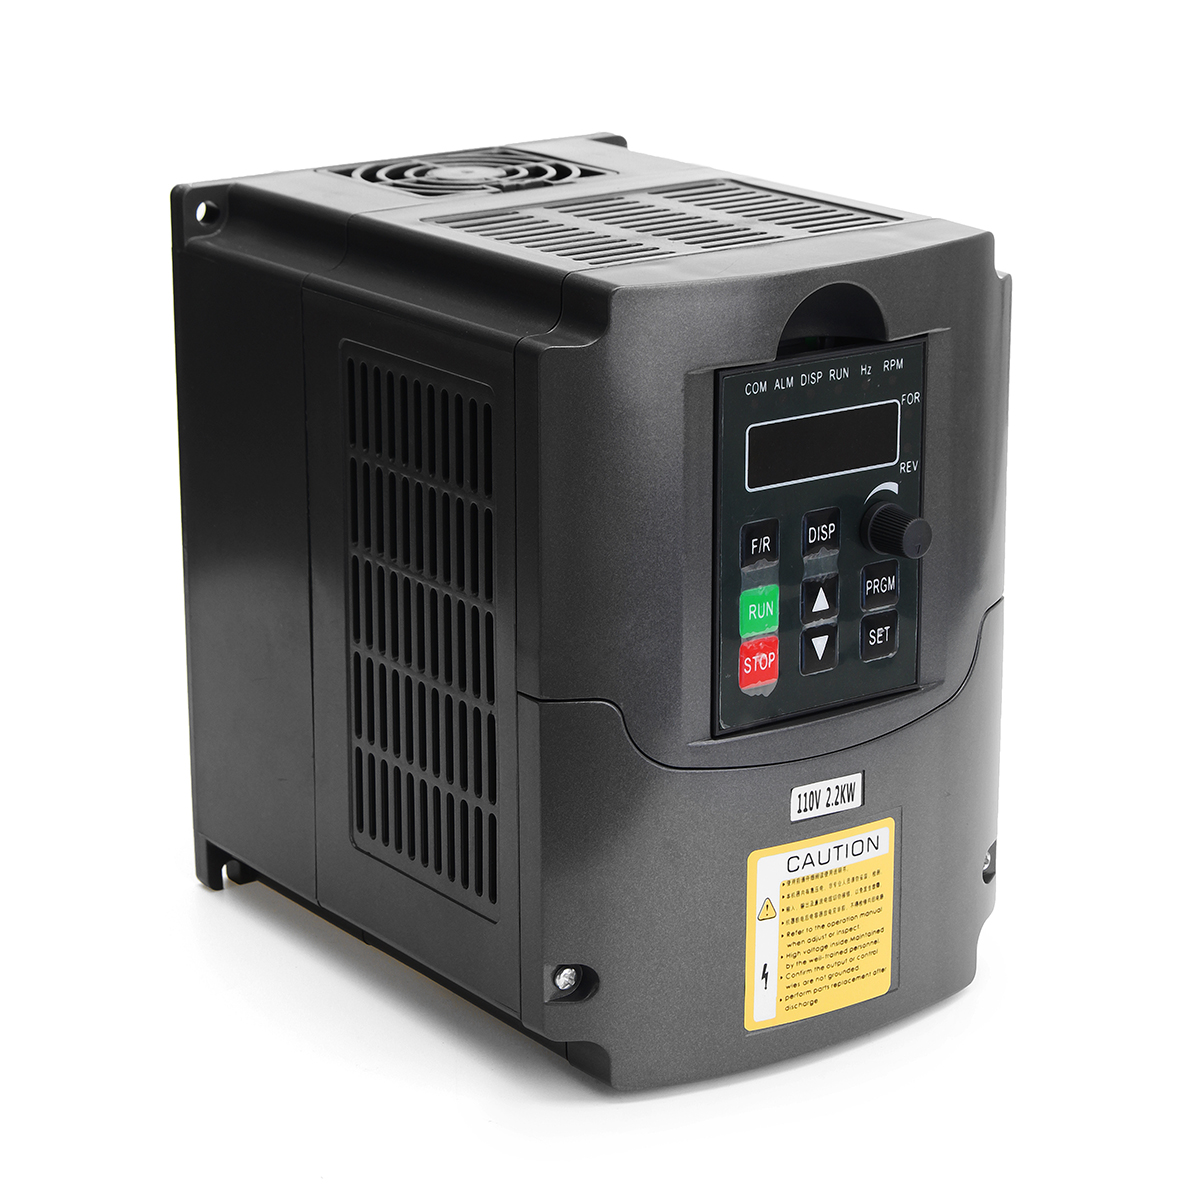 2.2KW 110V AC Variable Frequency Inverter Converter 3 Phase Output Single Phase Input Space Voltage Vector Modulation 110v 2 2kw ac variable frequency inverter converter 3 phase output single phase input space voltage vector modulation